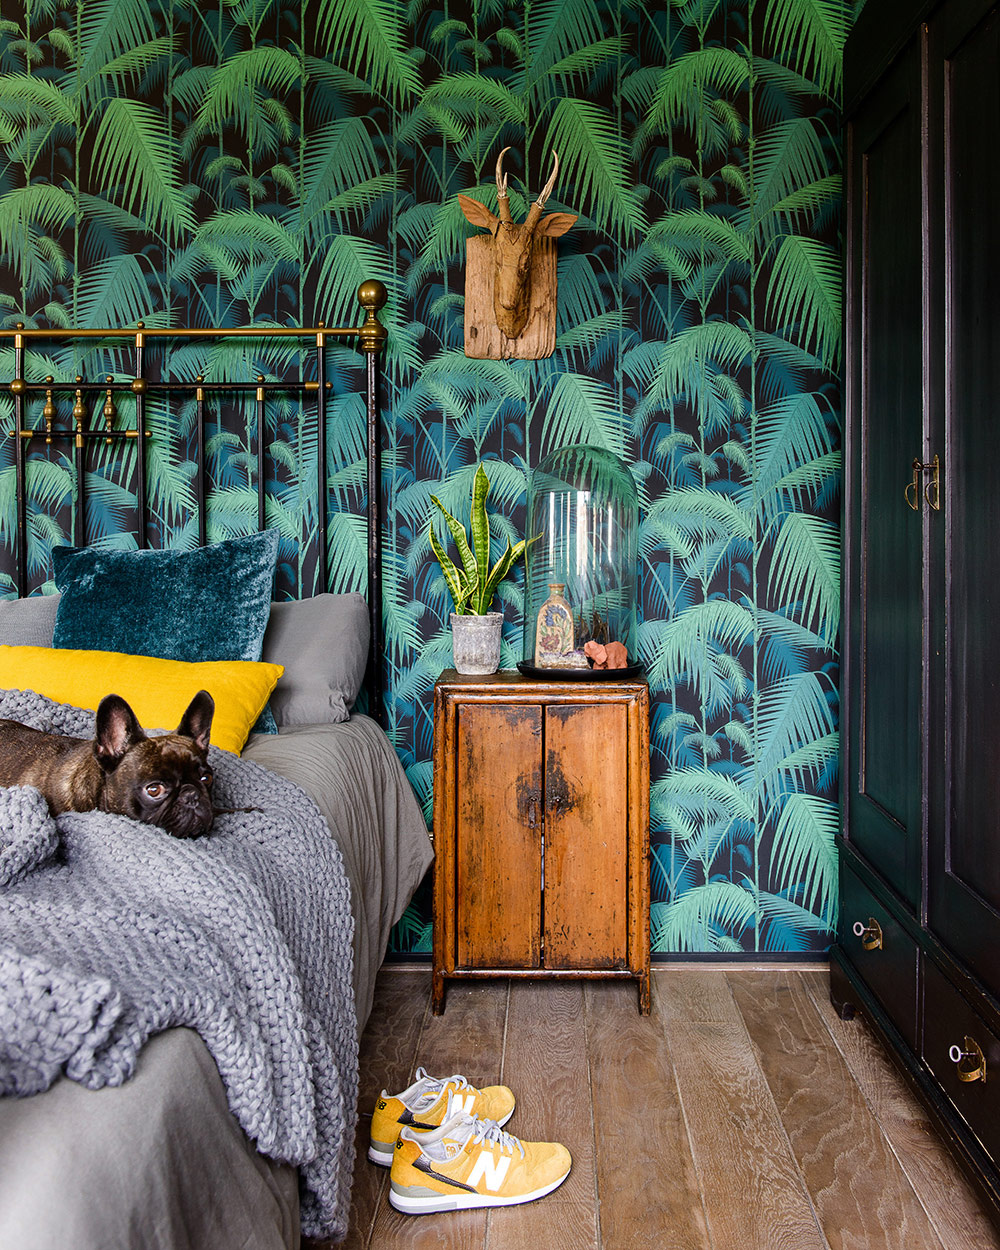 https://www.archana.nl/wp-content/uploads/blog-slaapkamers-en-interieurs-met-tropisch-groen-behang-02-cole-and-son-palm-jungle.jpg